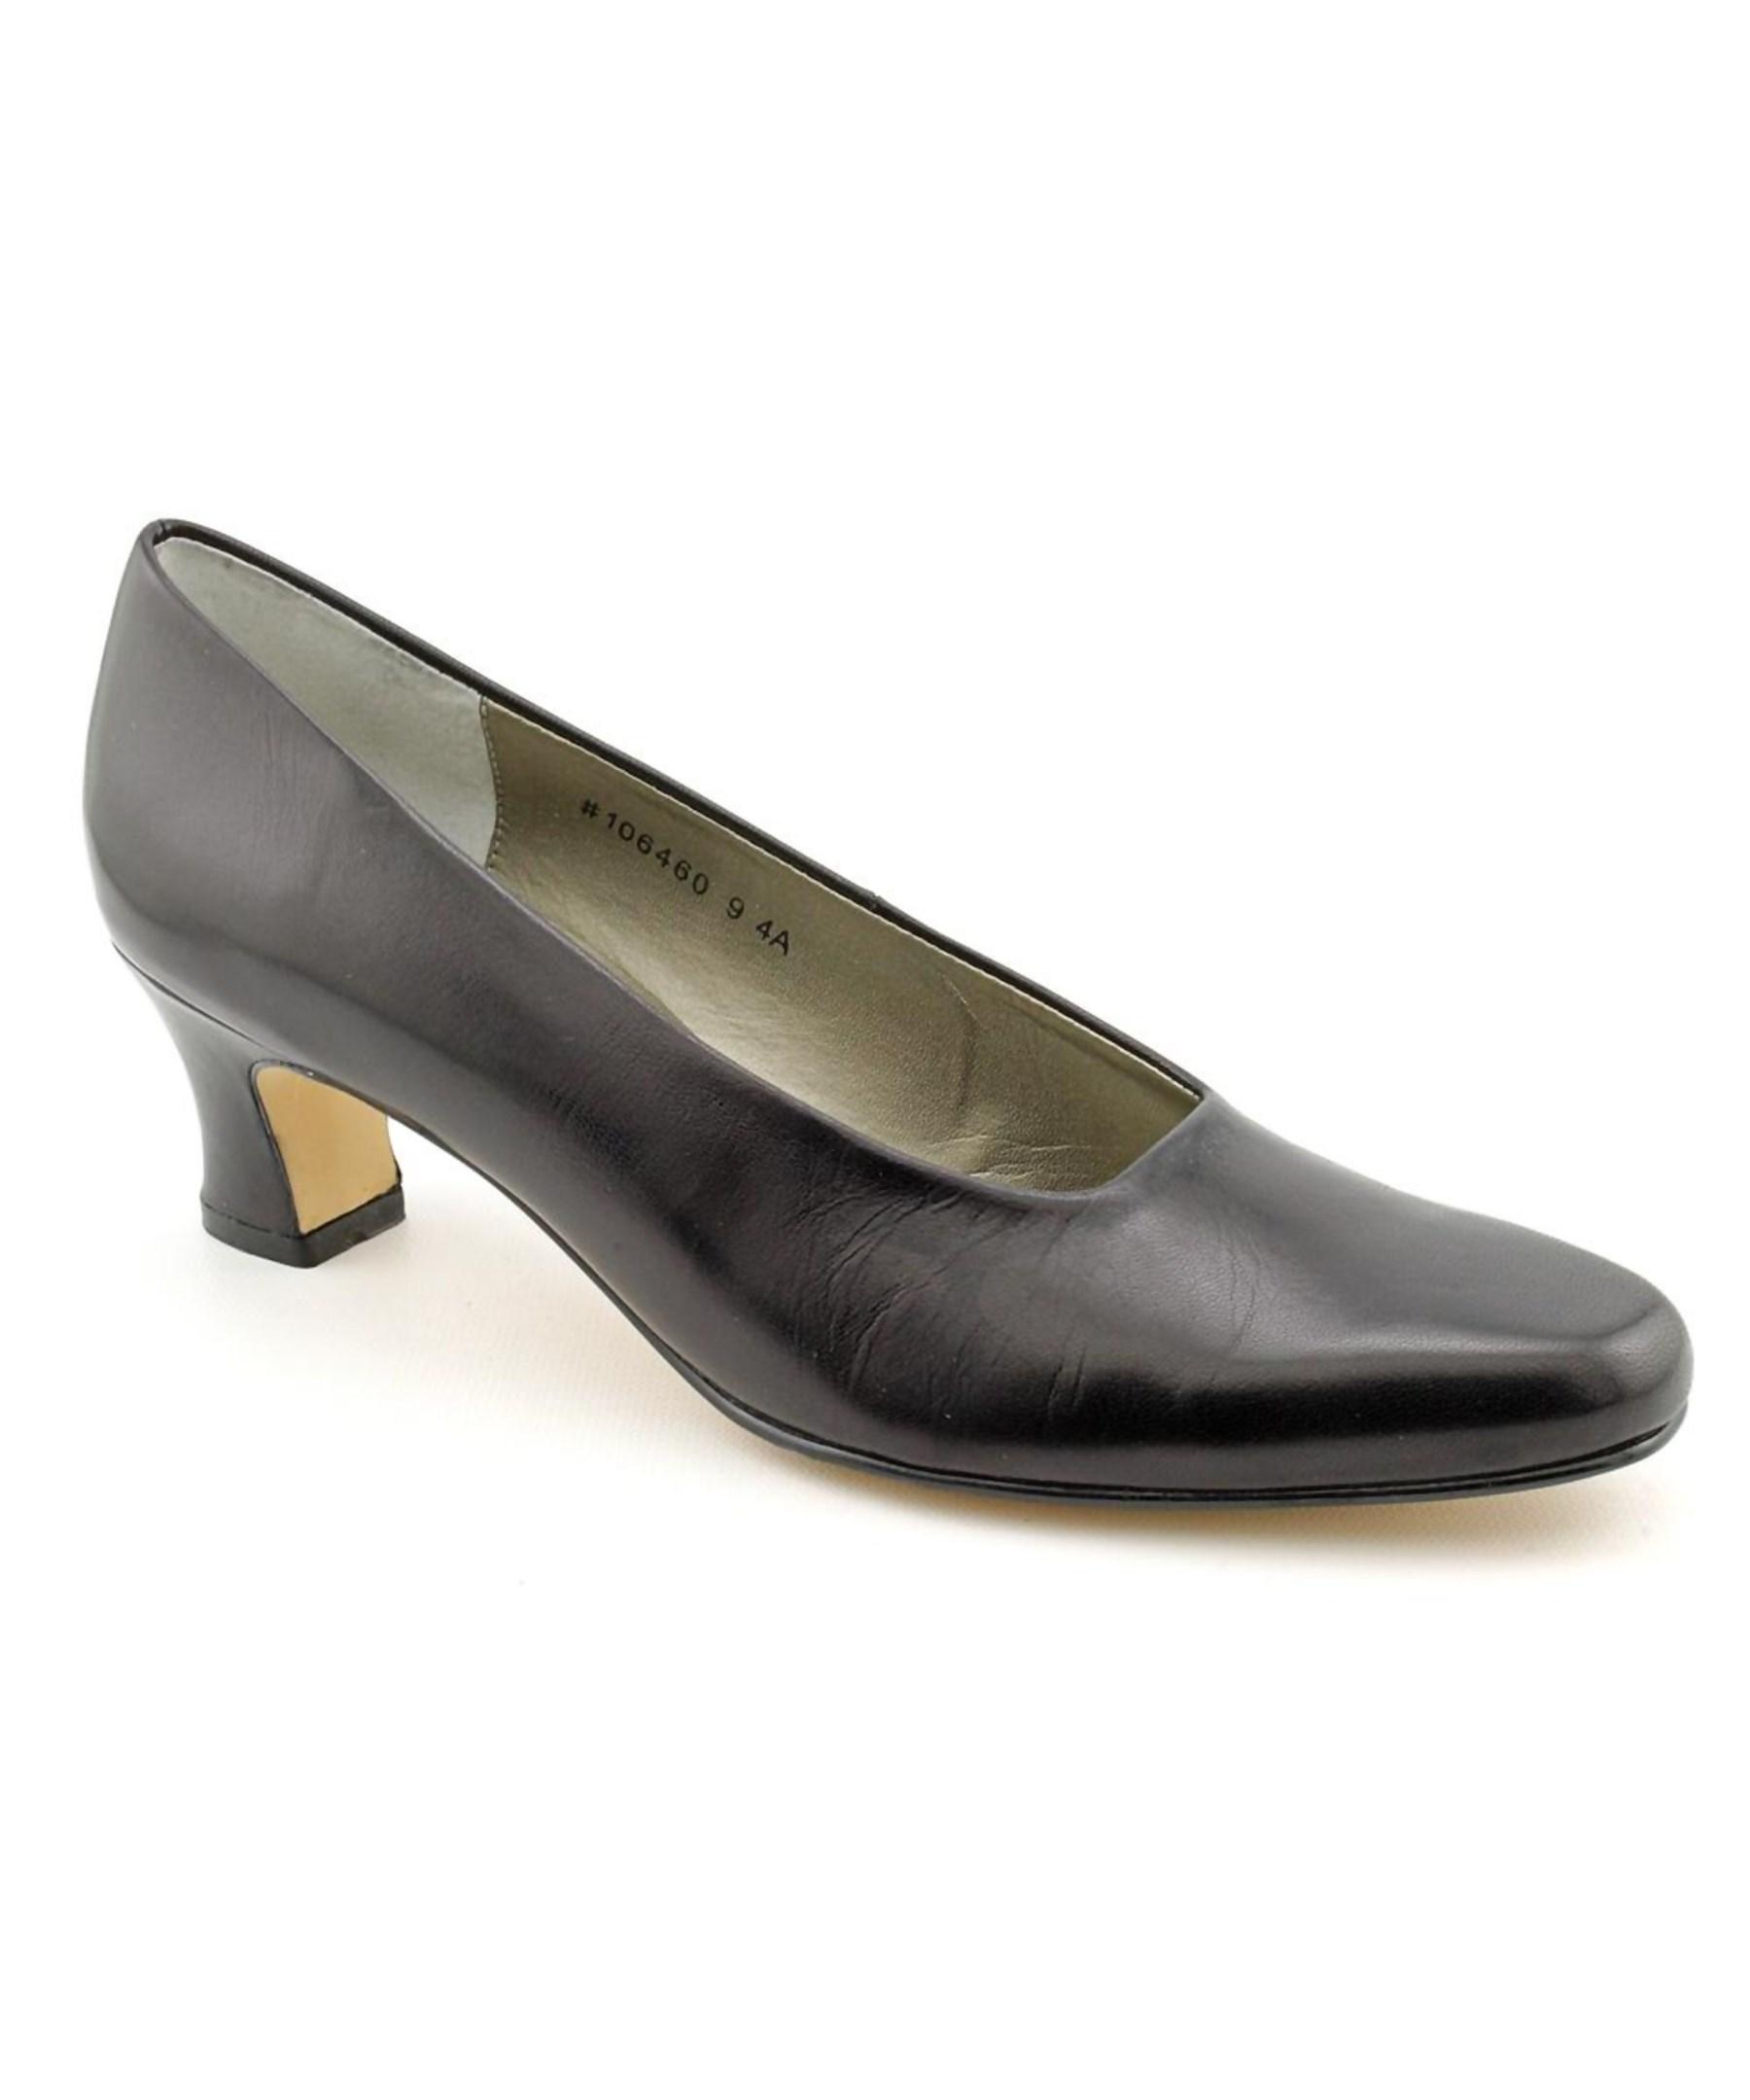 ros hommerson vicki ww toe patent leather